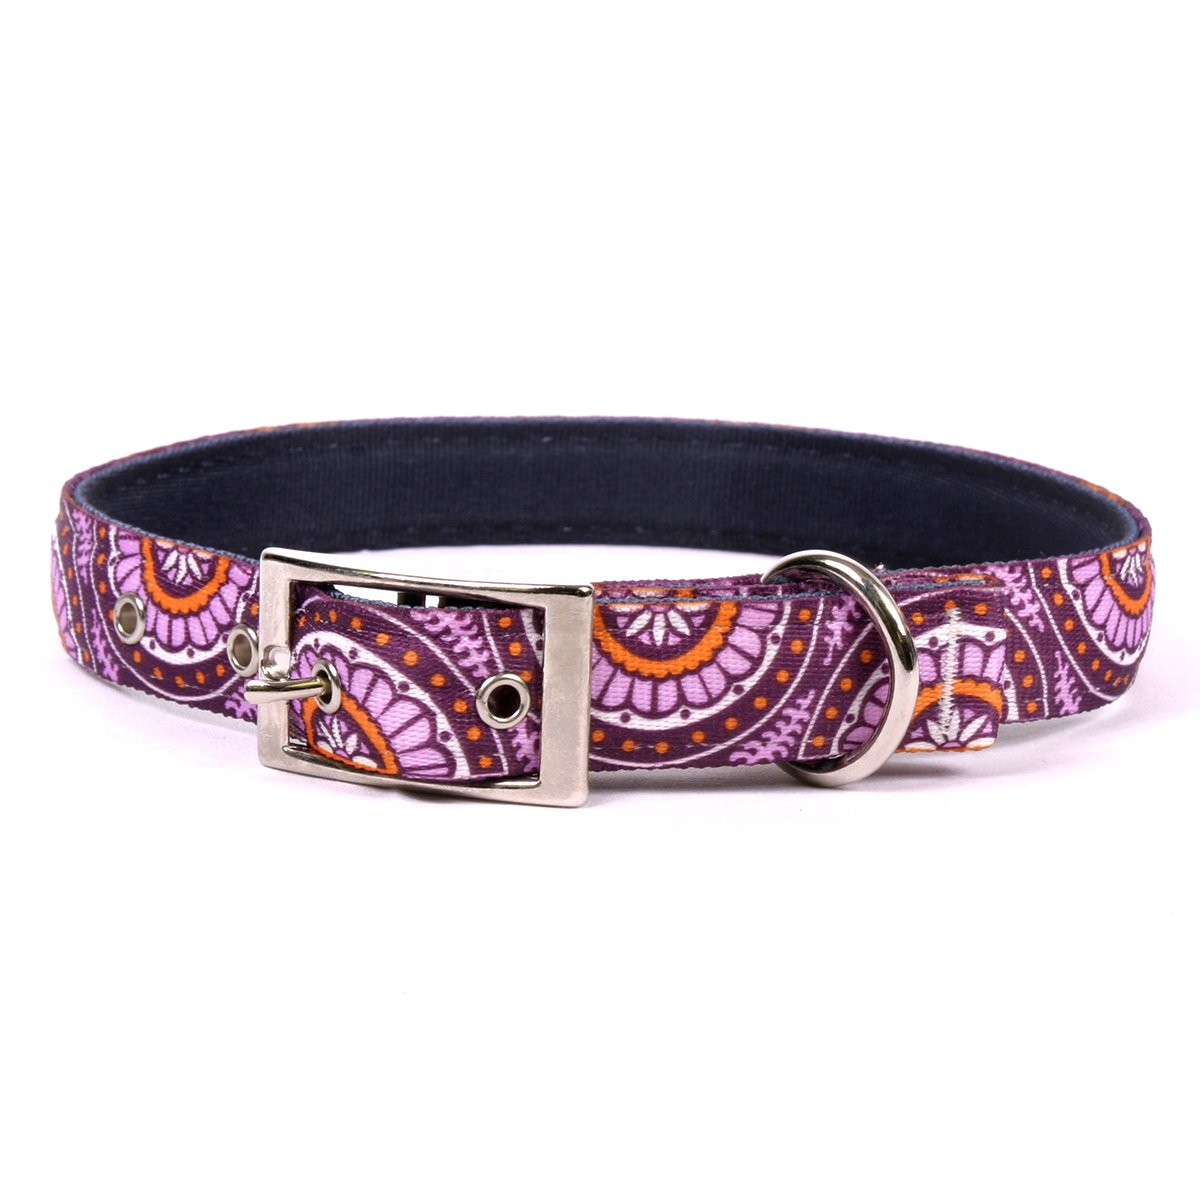 Yellow Dog Design Radiance Purple Uptown Dog Collar, Medium-1'' Wide and fits Neck Sizes 15 to 18.5''